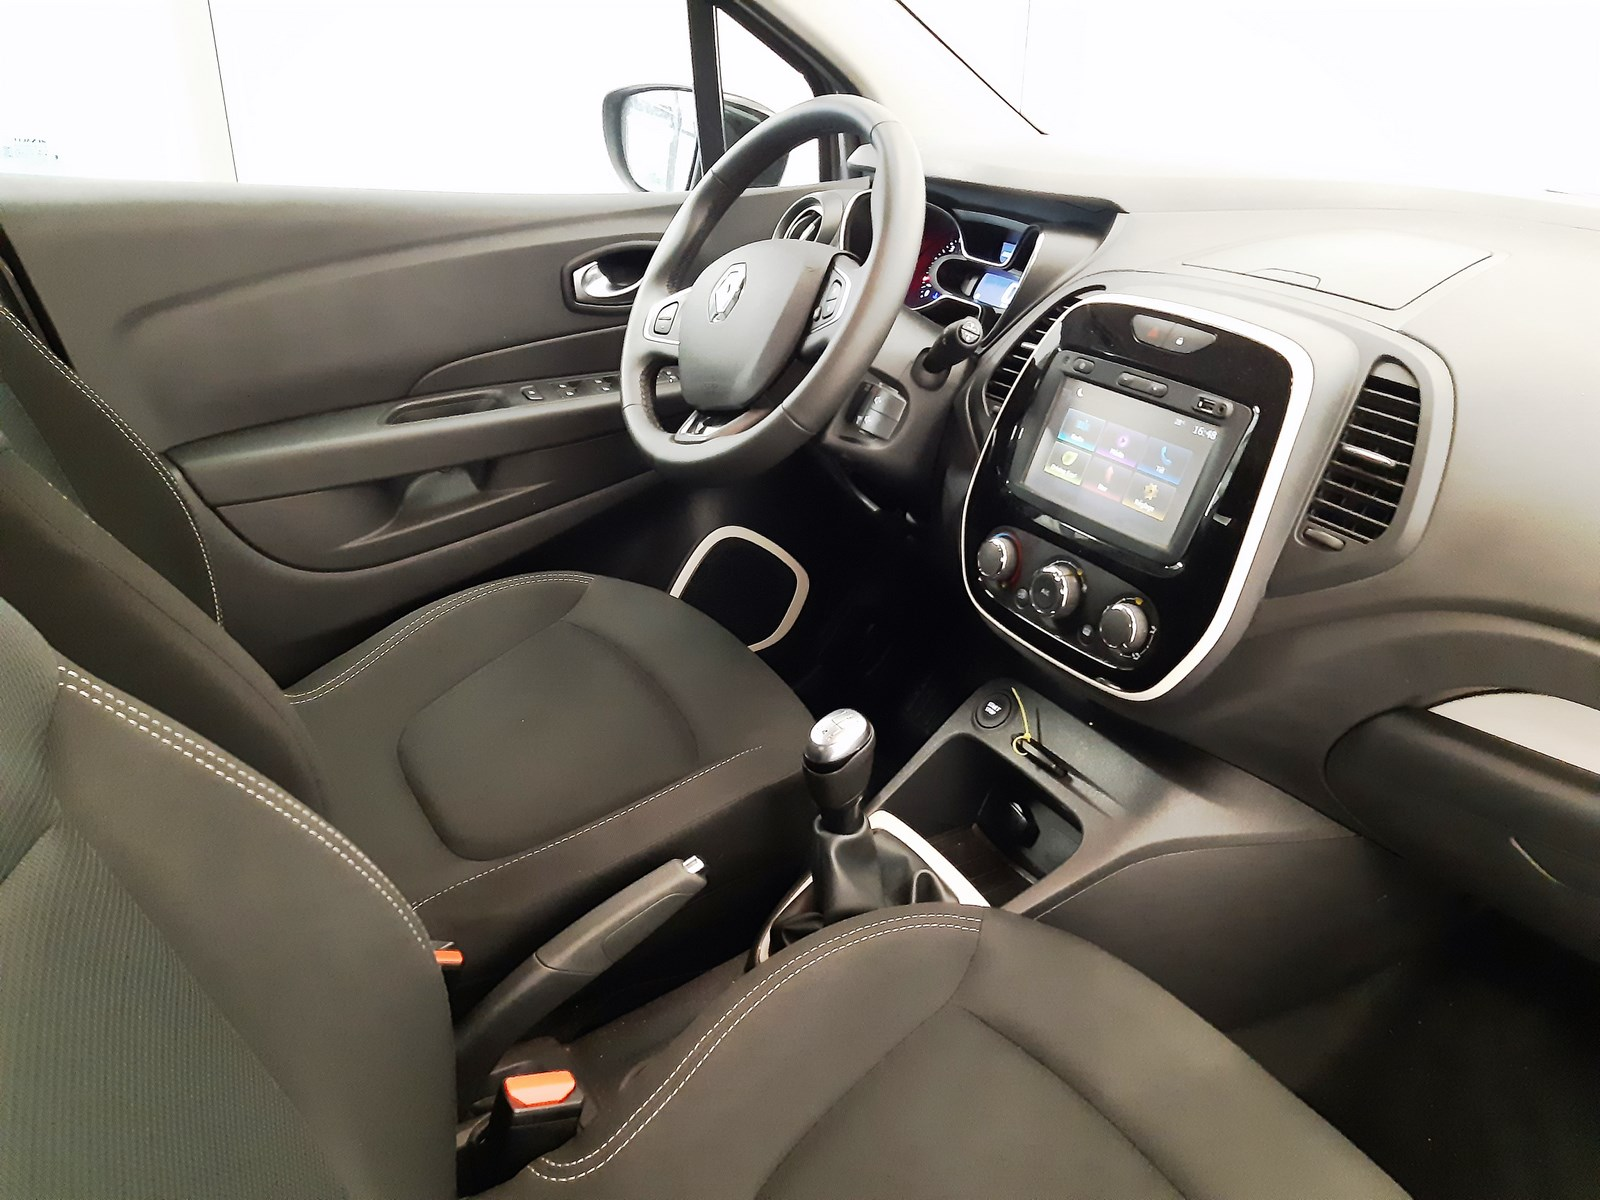 CAPTUR DCI 90 E6C BUSINESS